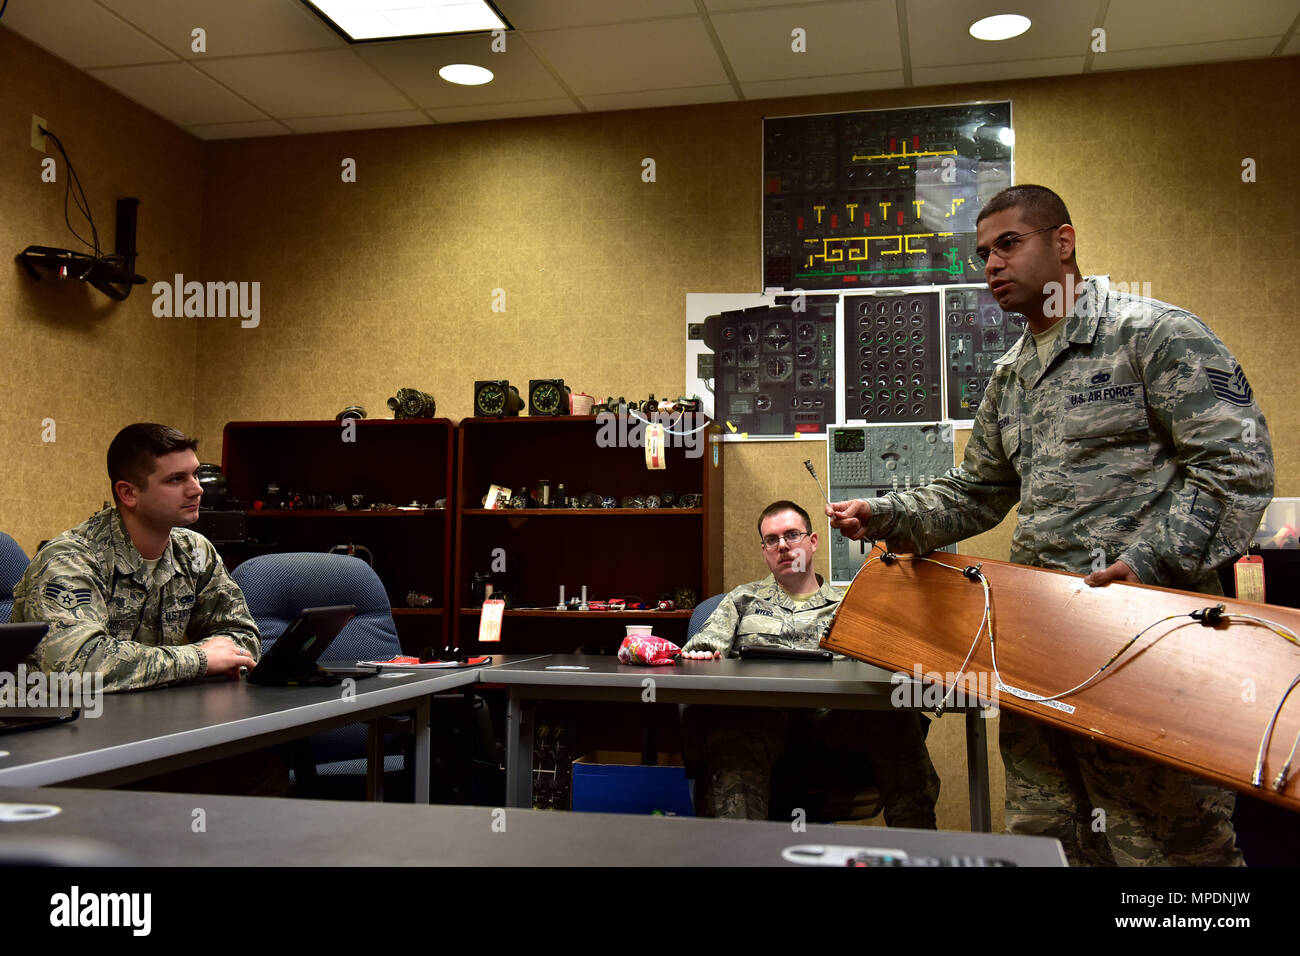 U.S. Air Force Tech. Sgt. Jose Piedra, standing, 373rd Training Squadron Detachment 4 production supervisor and instructor, discusses the importance of the 1553B databus backbone cable for the C-130J to his students Feb. 23, 2017 at the Center of Excellence on Little Rock Air Force Base, Ark.  The cable transfers critical information between the computer systems throughout the aircraft and the Airmen are responsible for the understanding how they work. (U.S. Air Force photo by Staff Sgt. Jeremy McGuffin) - Stock Image